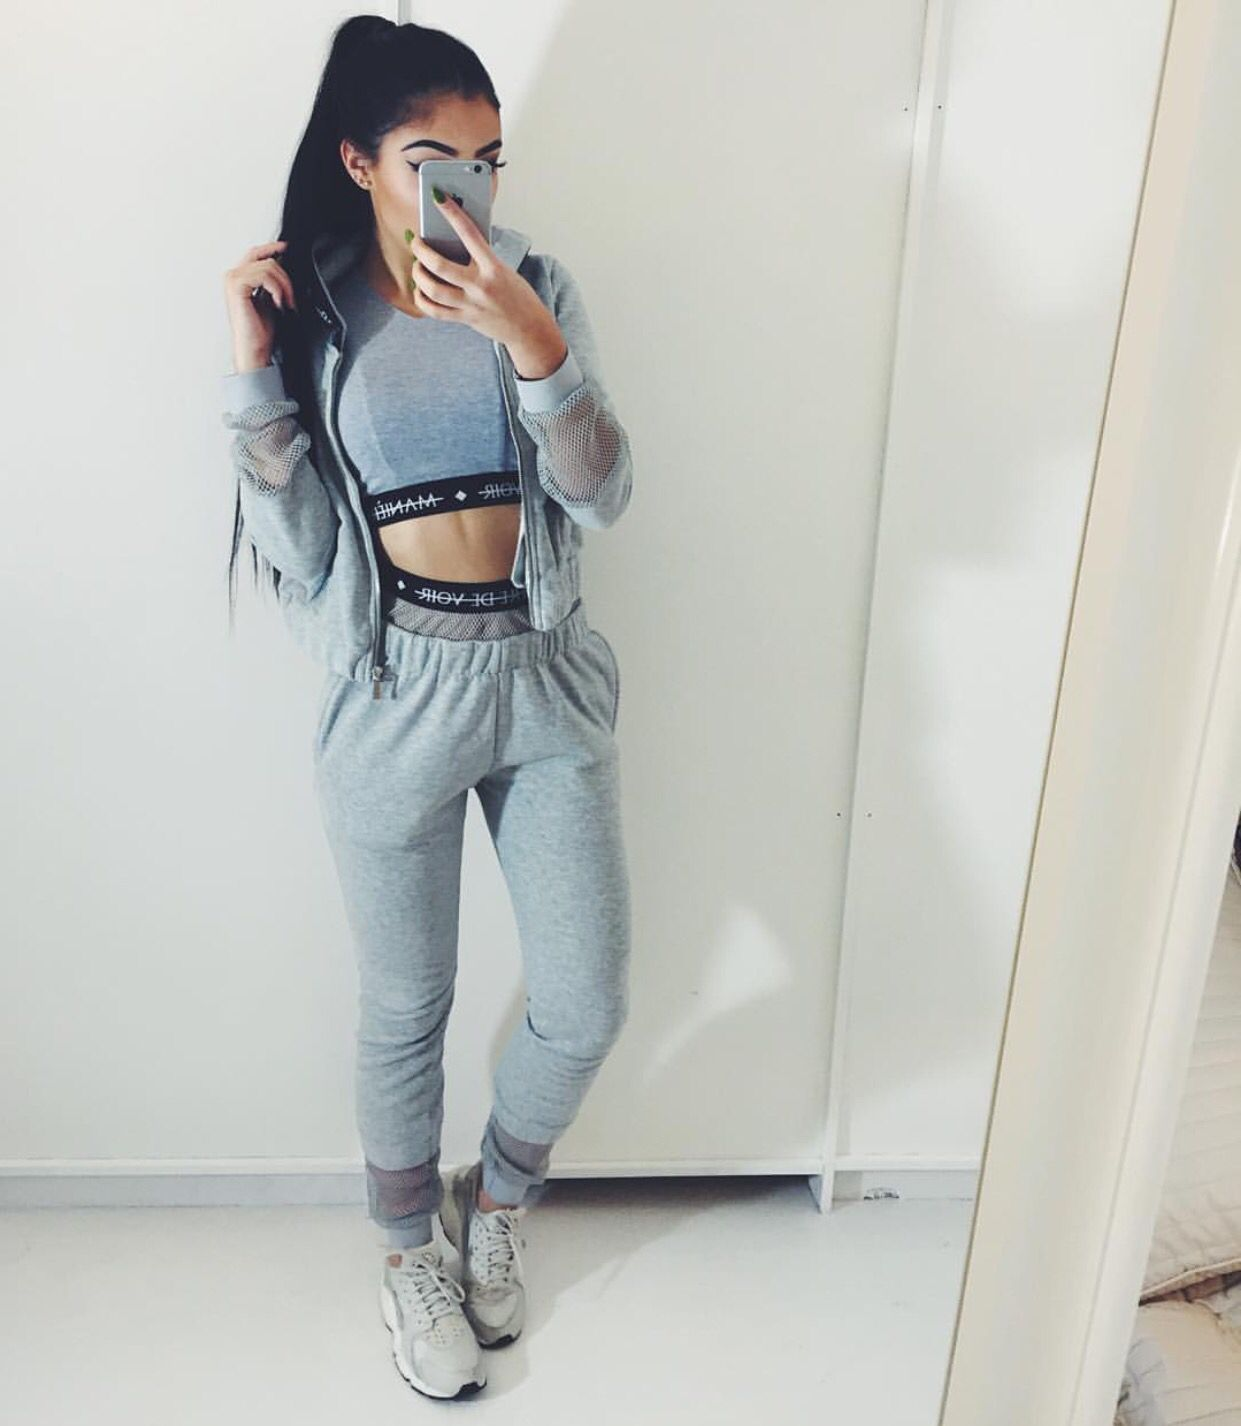 Madelinemercedes On Instagra Fashion Pinterest Clothes Clothing And Fashion